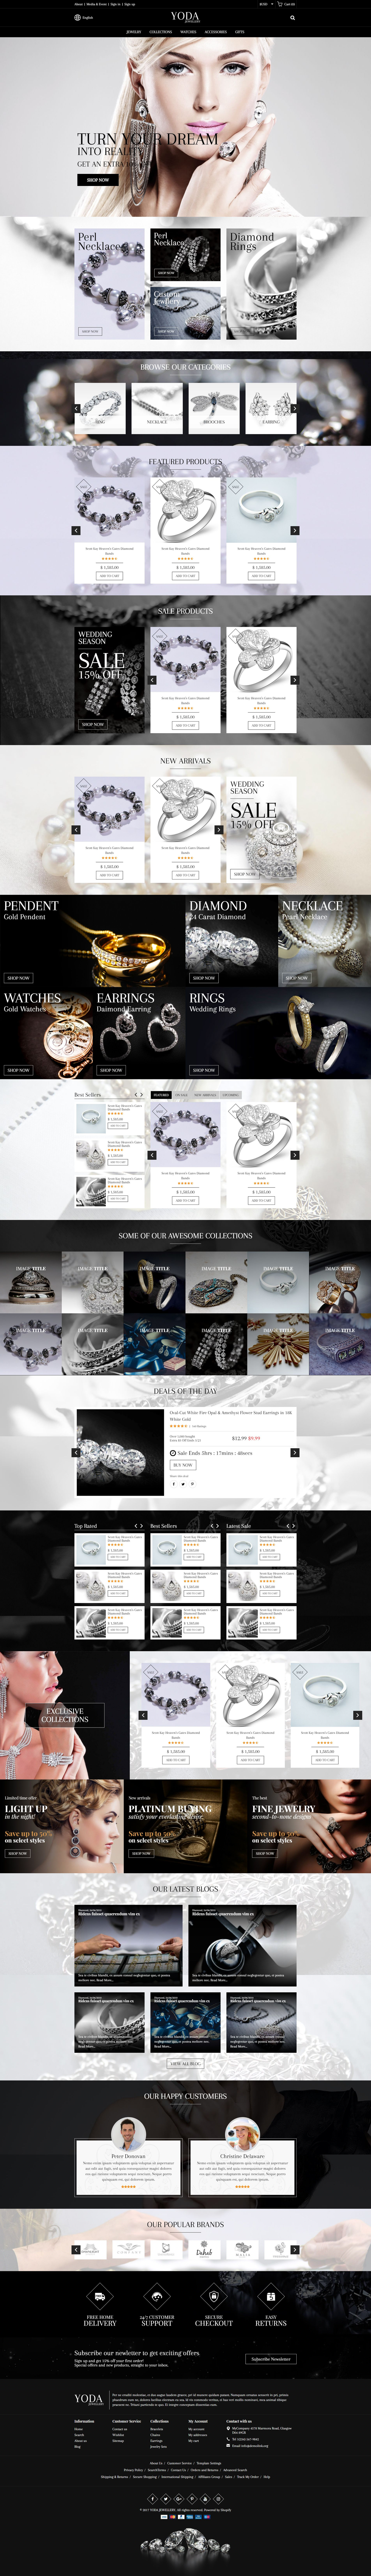 Yoda - Jewelry Shop HTML Template Screenshot 4